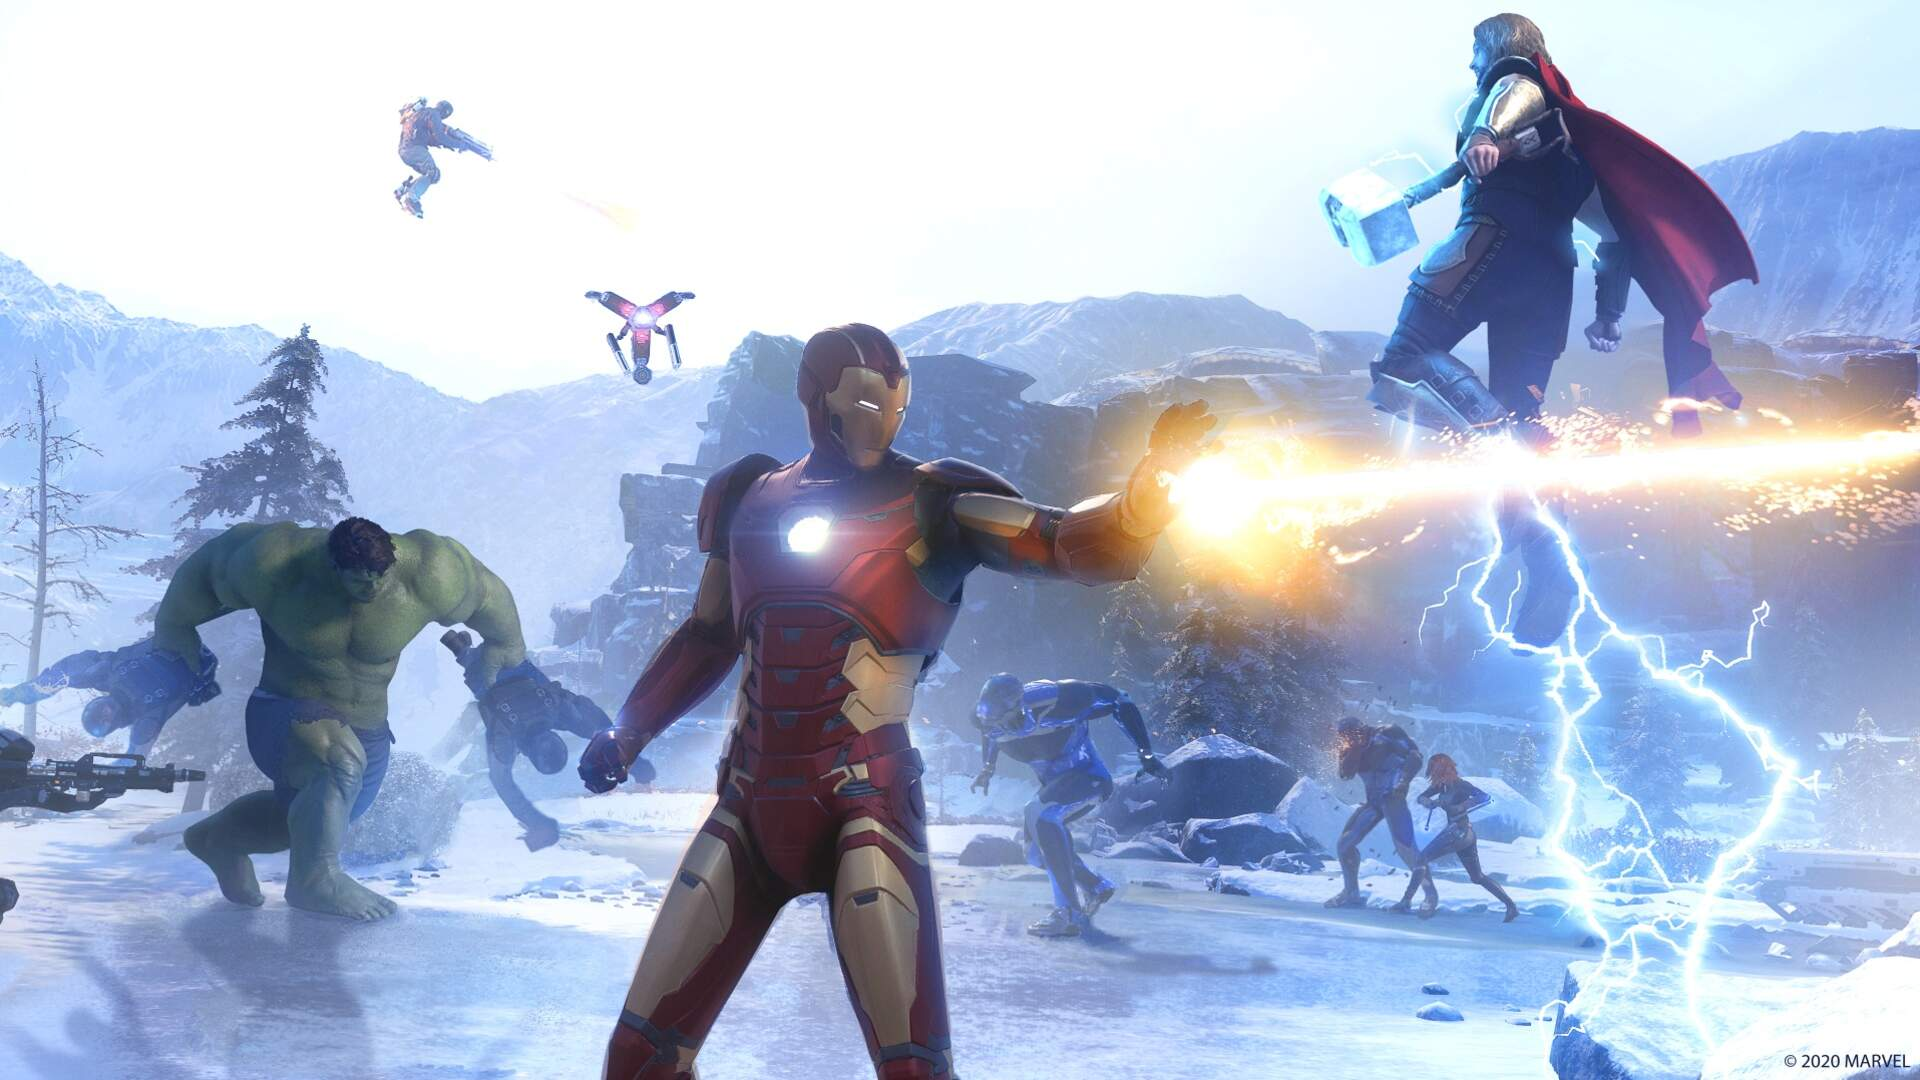 Marvel's Avengers Datamined DLC Characters Include Captain Marvel, She Hulk, Kate Bishop, and More